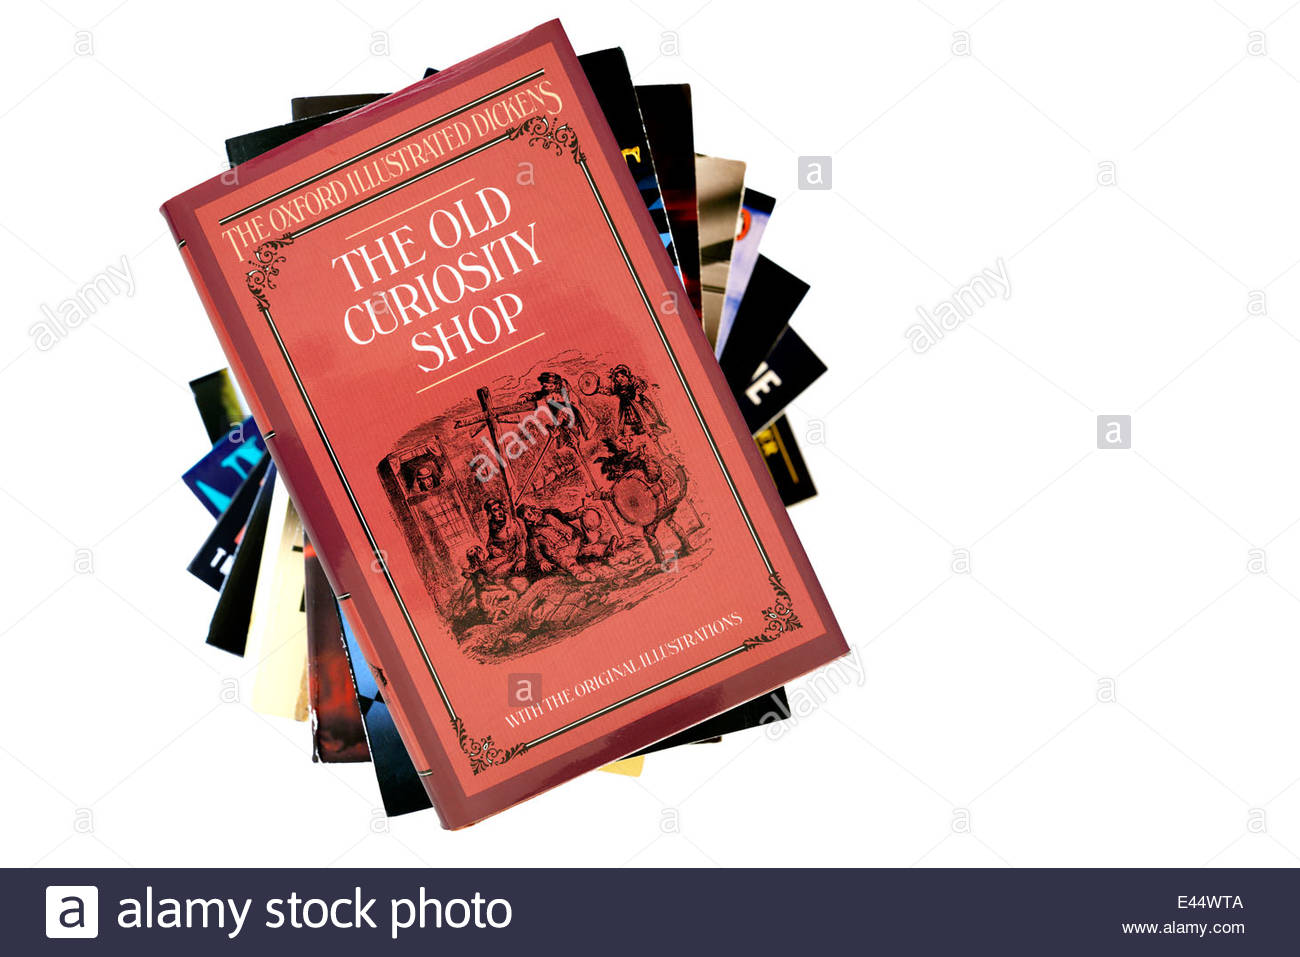 Charles Dickens novels, The Old Curiosity Shop, book title, stacked used books, England - Stock Image